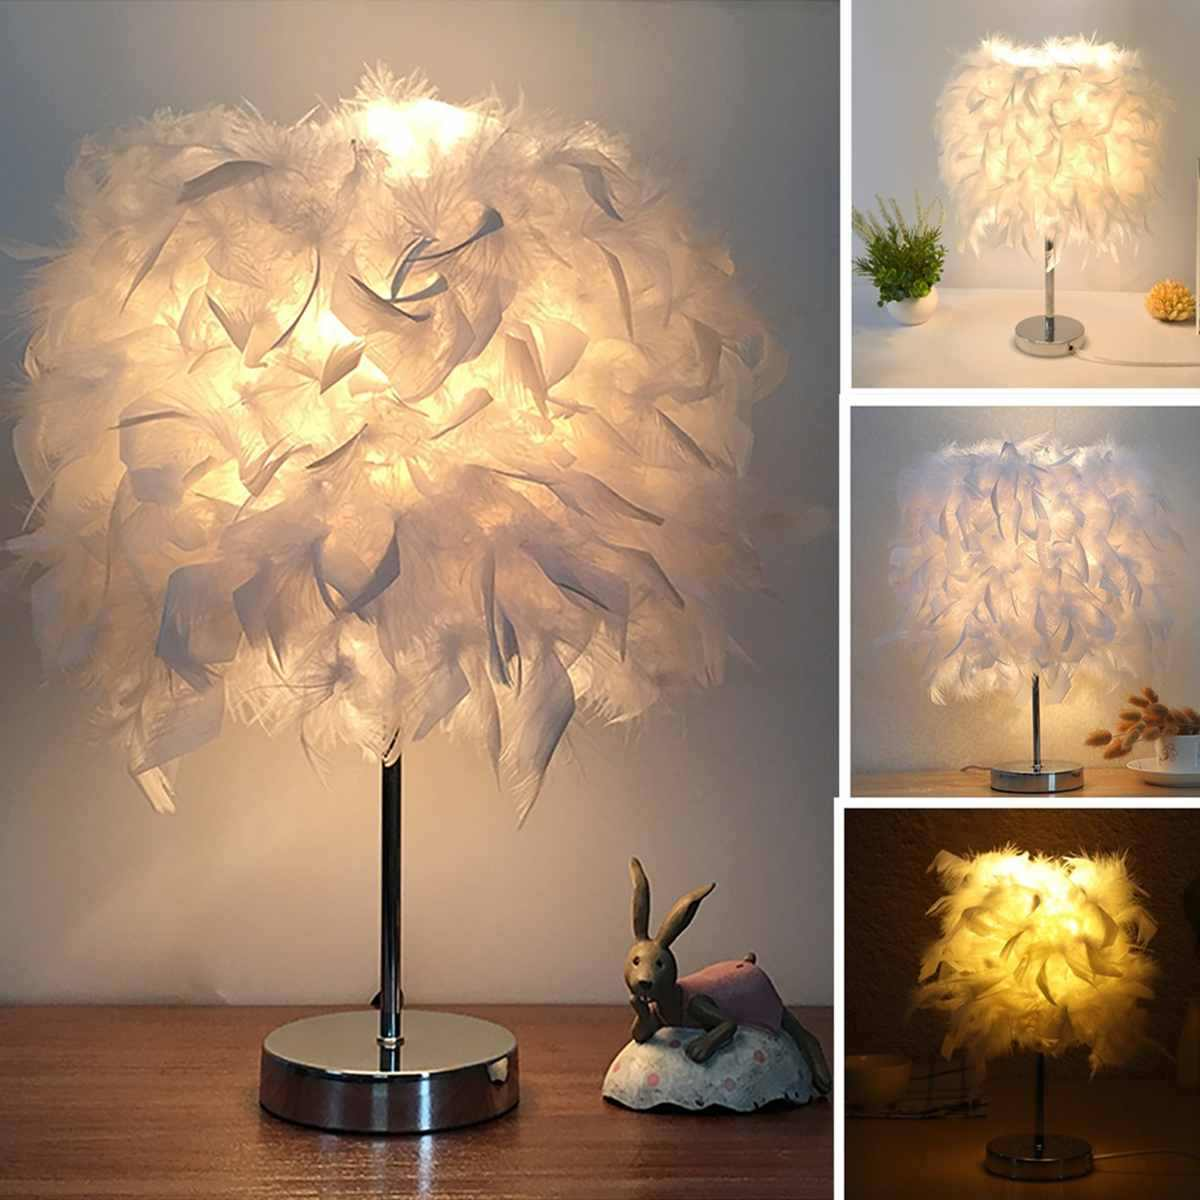 Adjustable 220V White Feather Table Lamp Bedside Desk Vintage Night Light Brightness Button Dimmer Switch Soft Warm Atmosphere